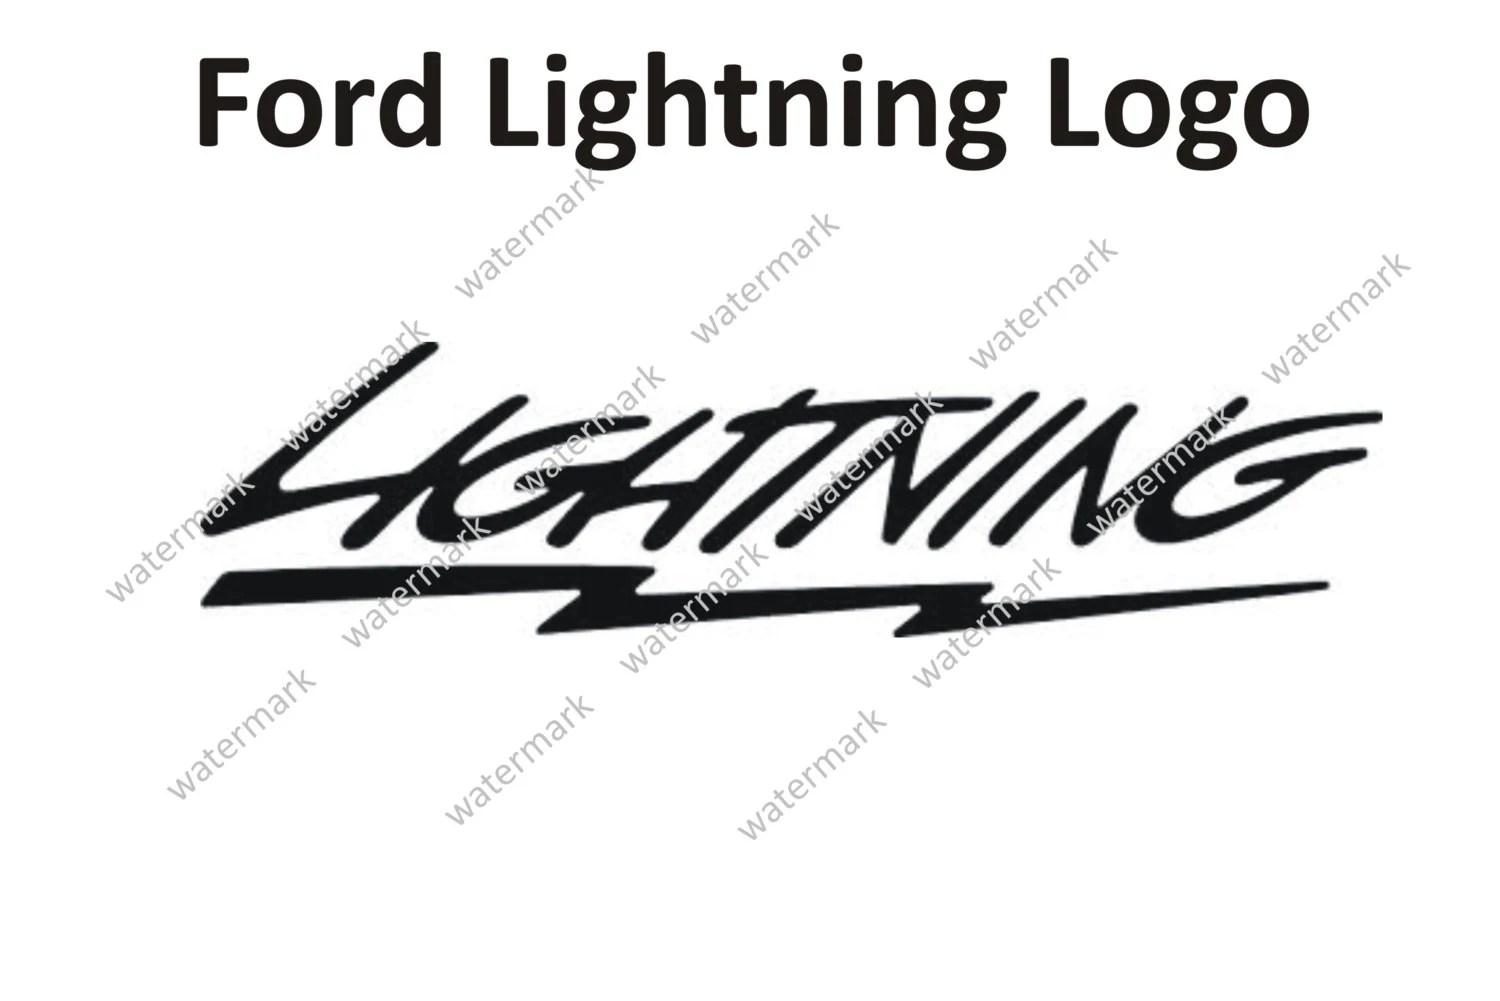 Ford Lightning Supercharged Decal